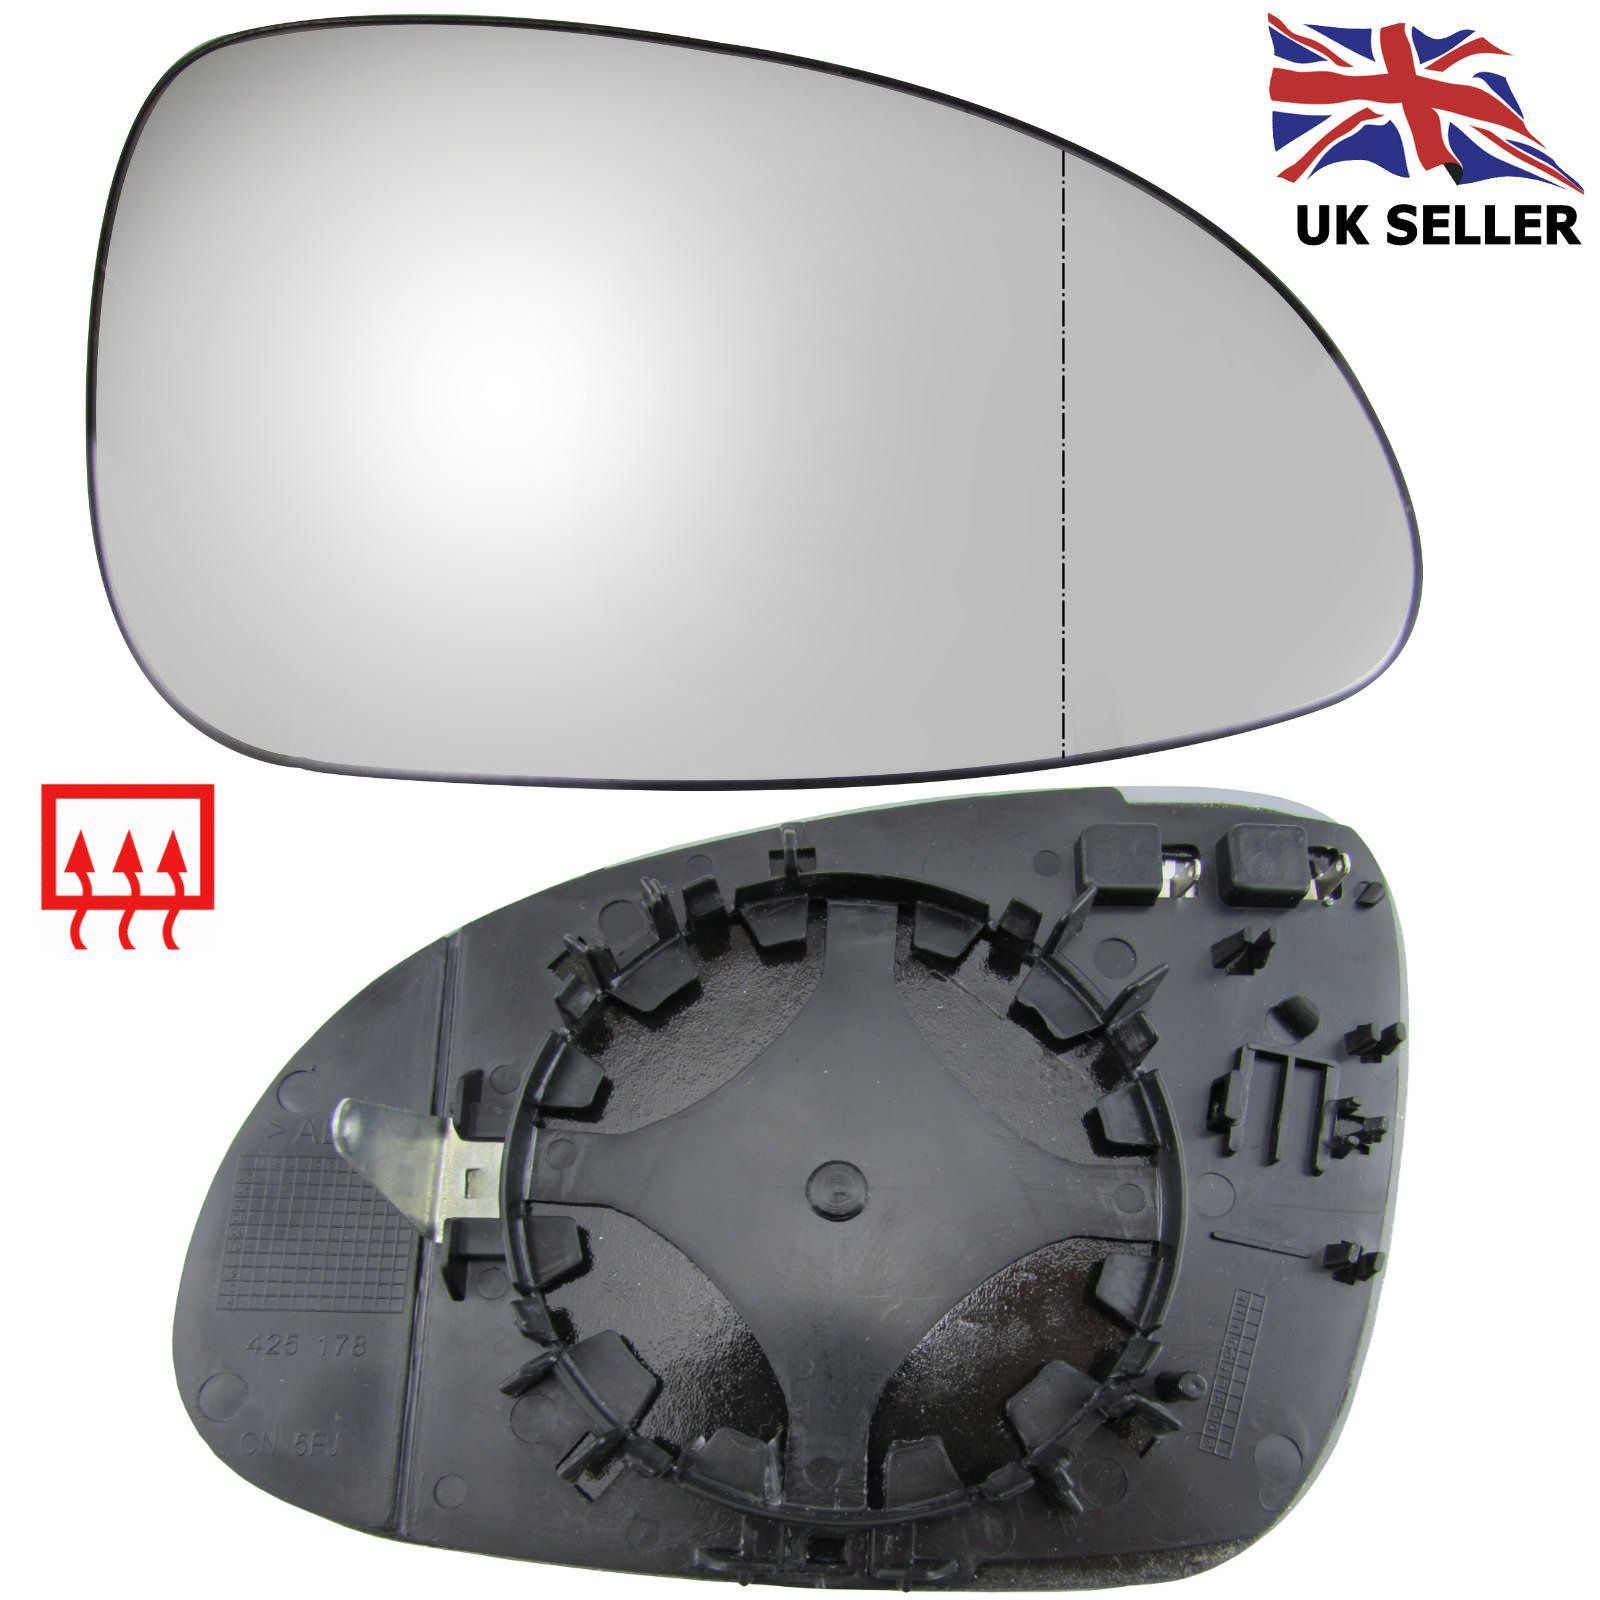 Vw Volkswagen Golf Mk5 Wing Mirror Glass Heated Right Driver Offside 2003 08 Vw Passat Wing Mirrors Auto Parts Online